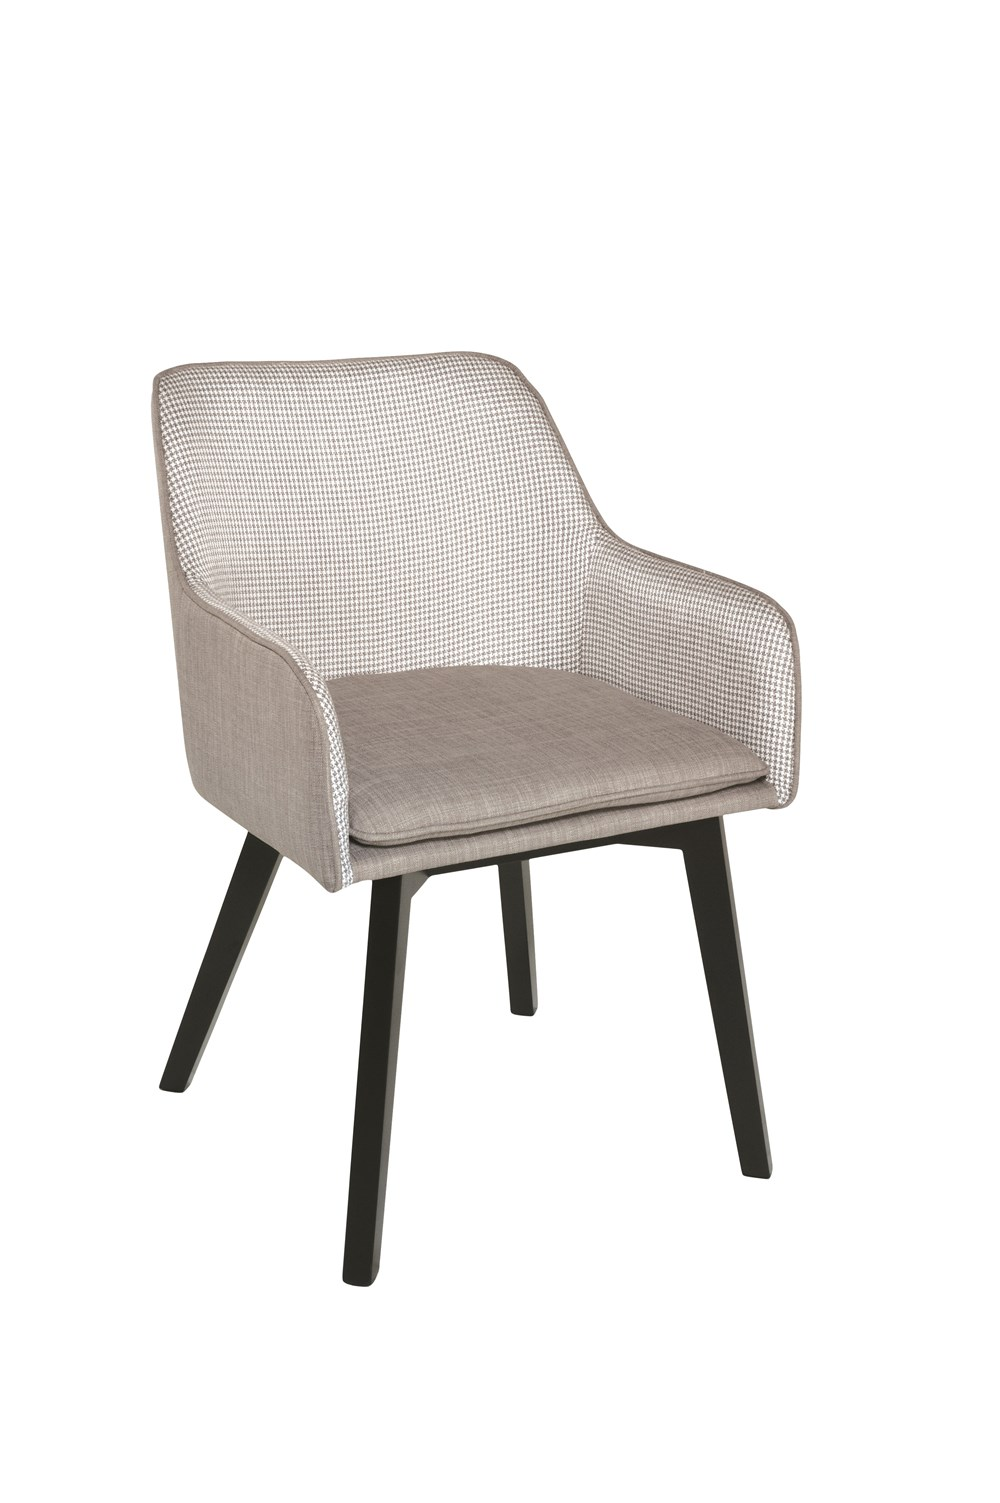 LOUISE Dining Chair in Grey Houndstooth with Black Legs